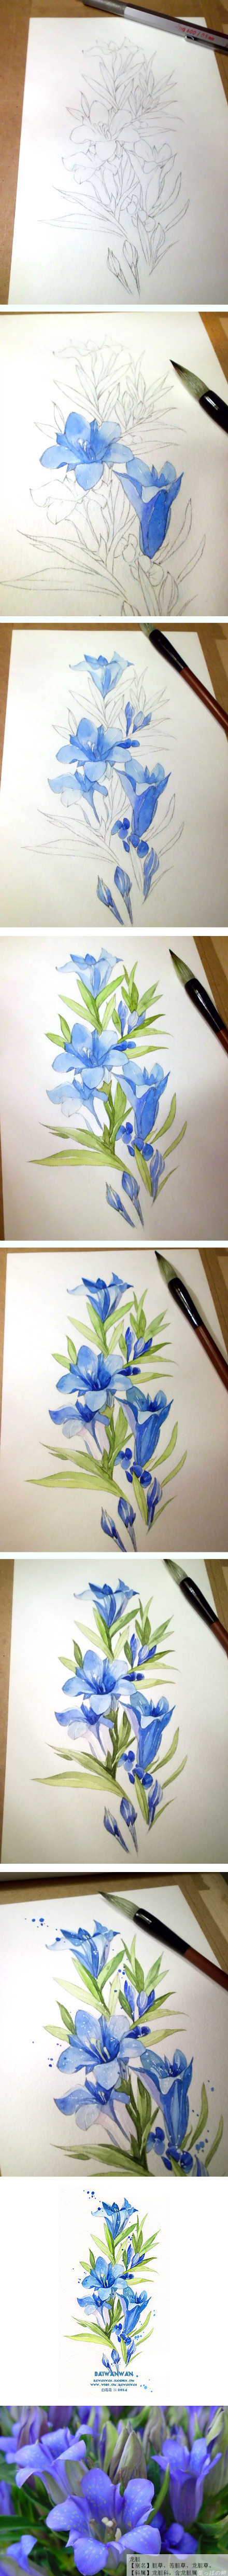 440x4962 20 Delicate Colorful Watercolor Flowers Painting Tutorials In Images